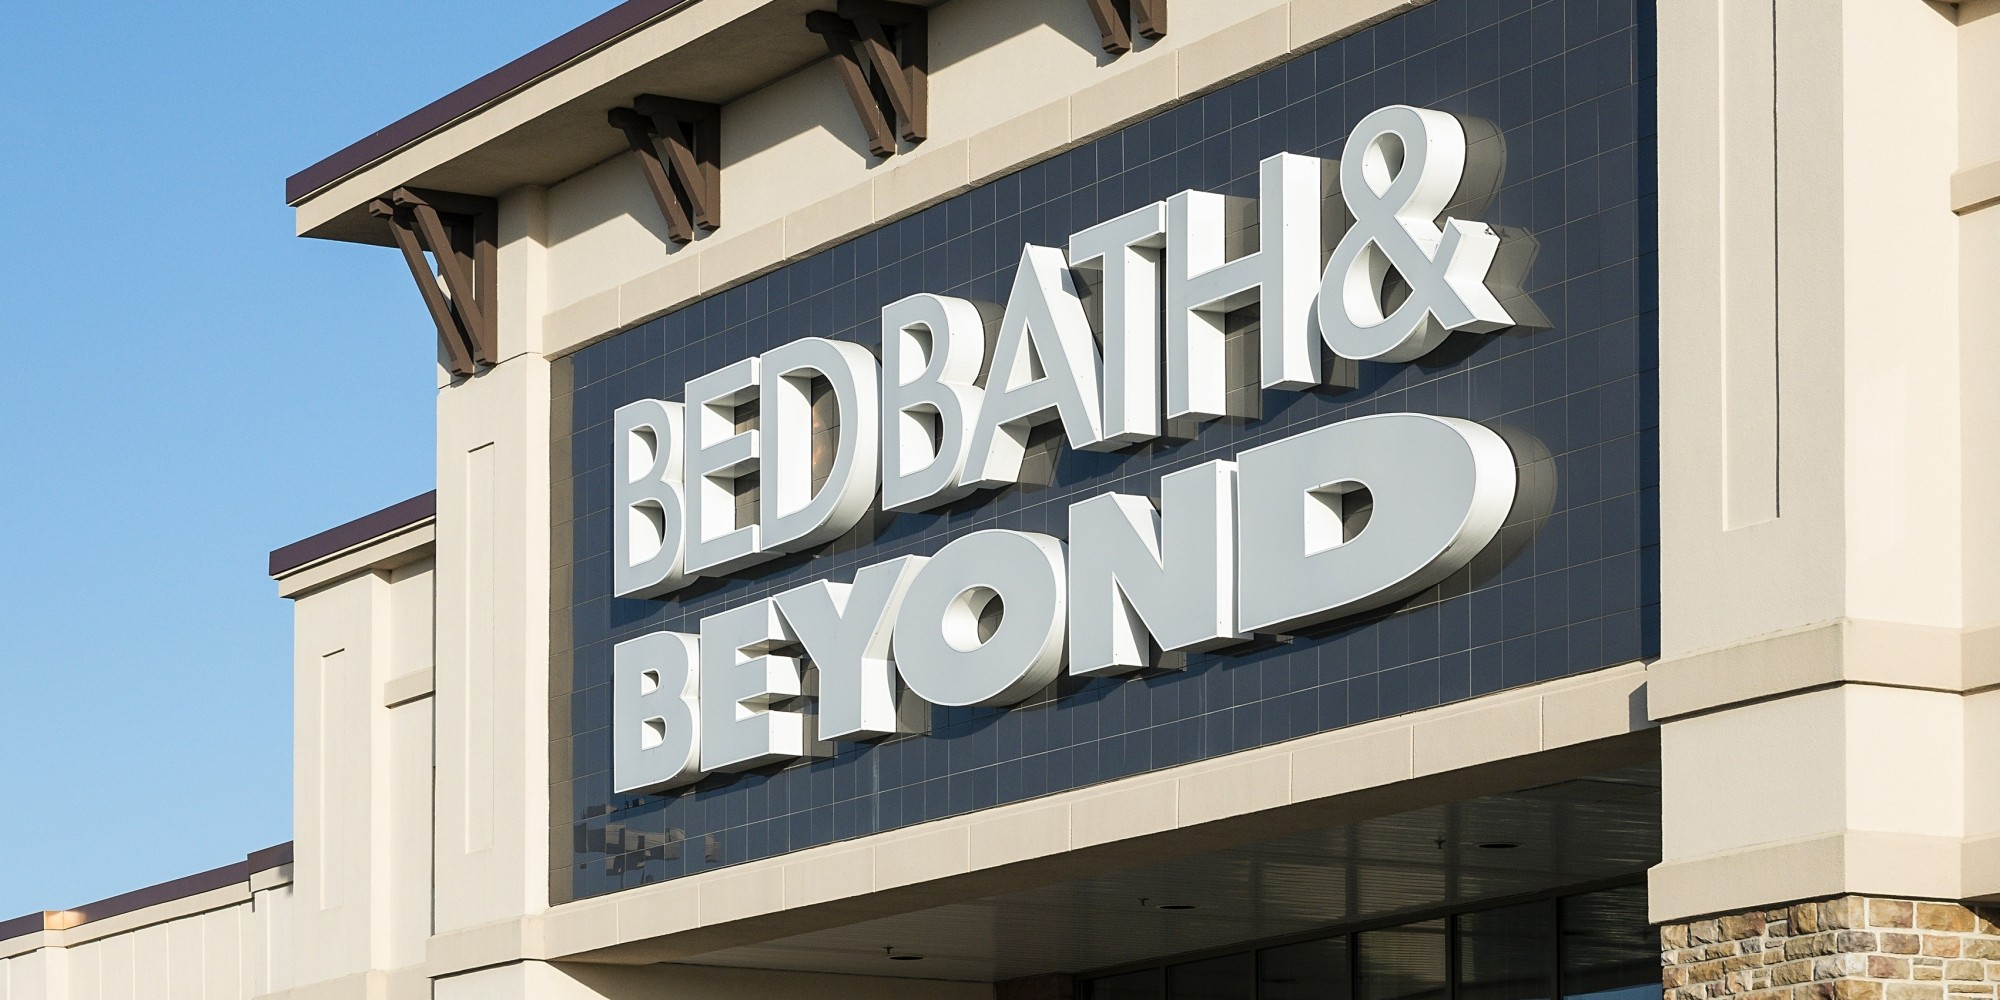 At Bed Bath & Beyond General News Huffington Post UK BrunchNews #266CA5